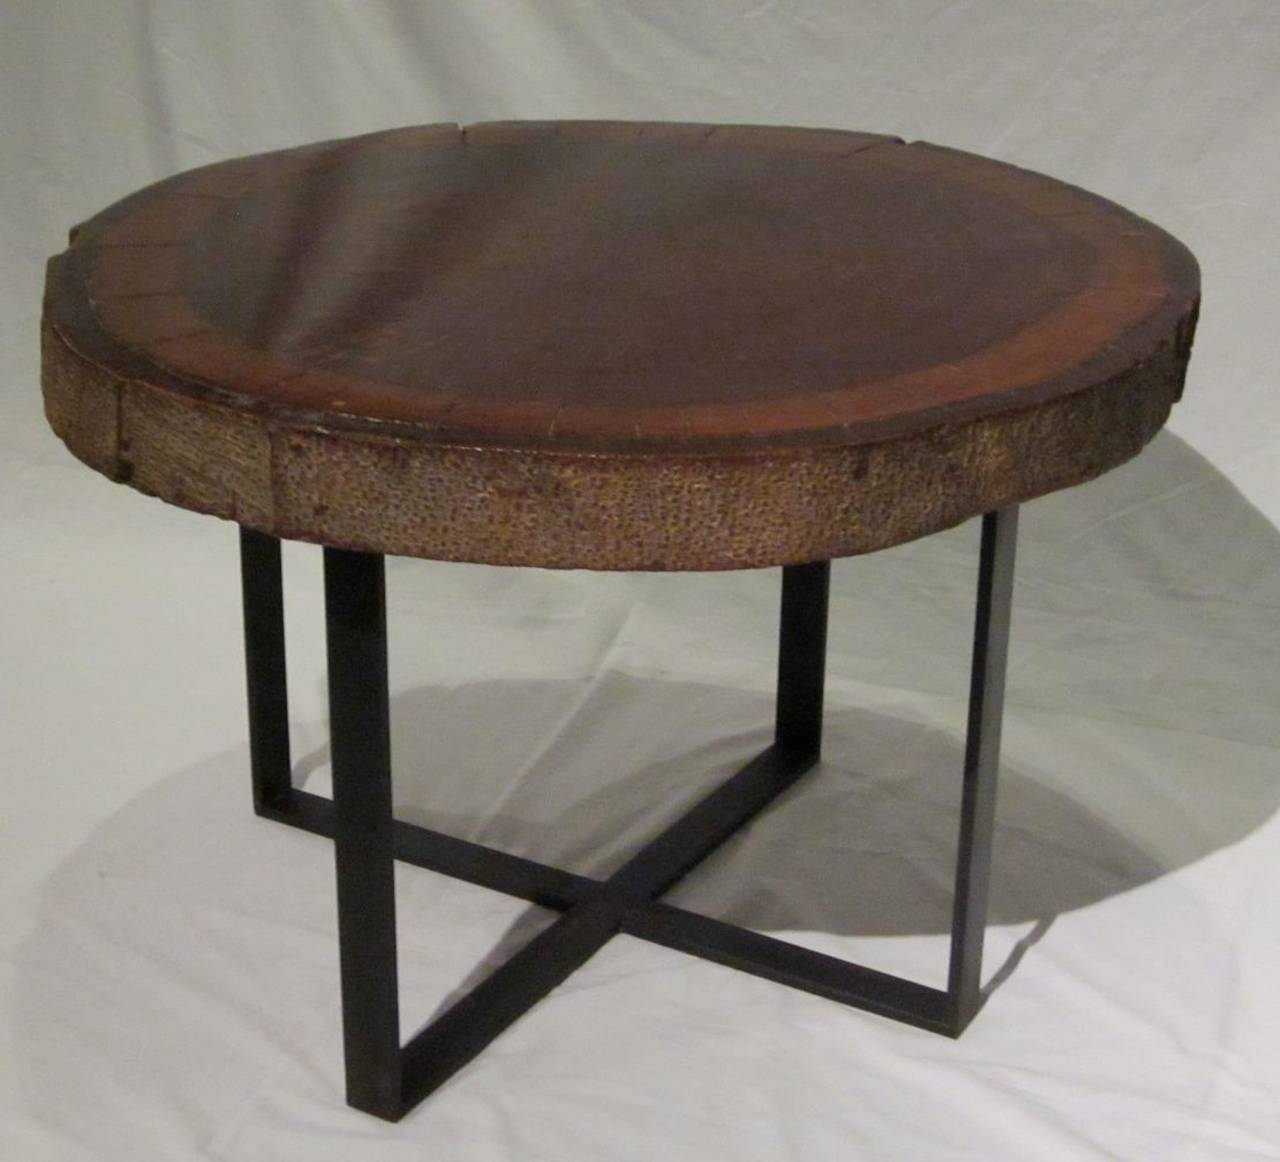 Wood Slice Accent Table: 1940s Wood Slice Coffee Table At 1stdibs